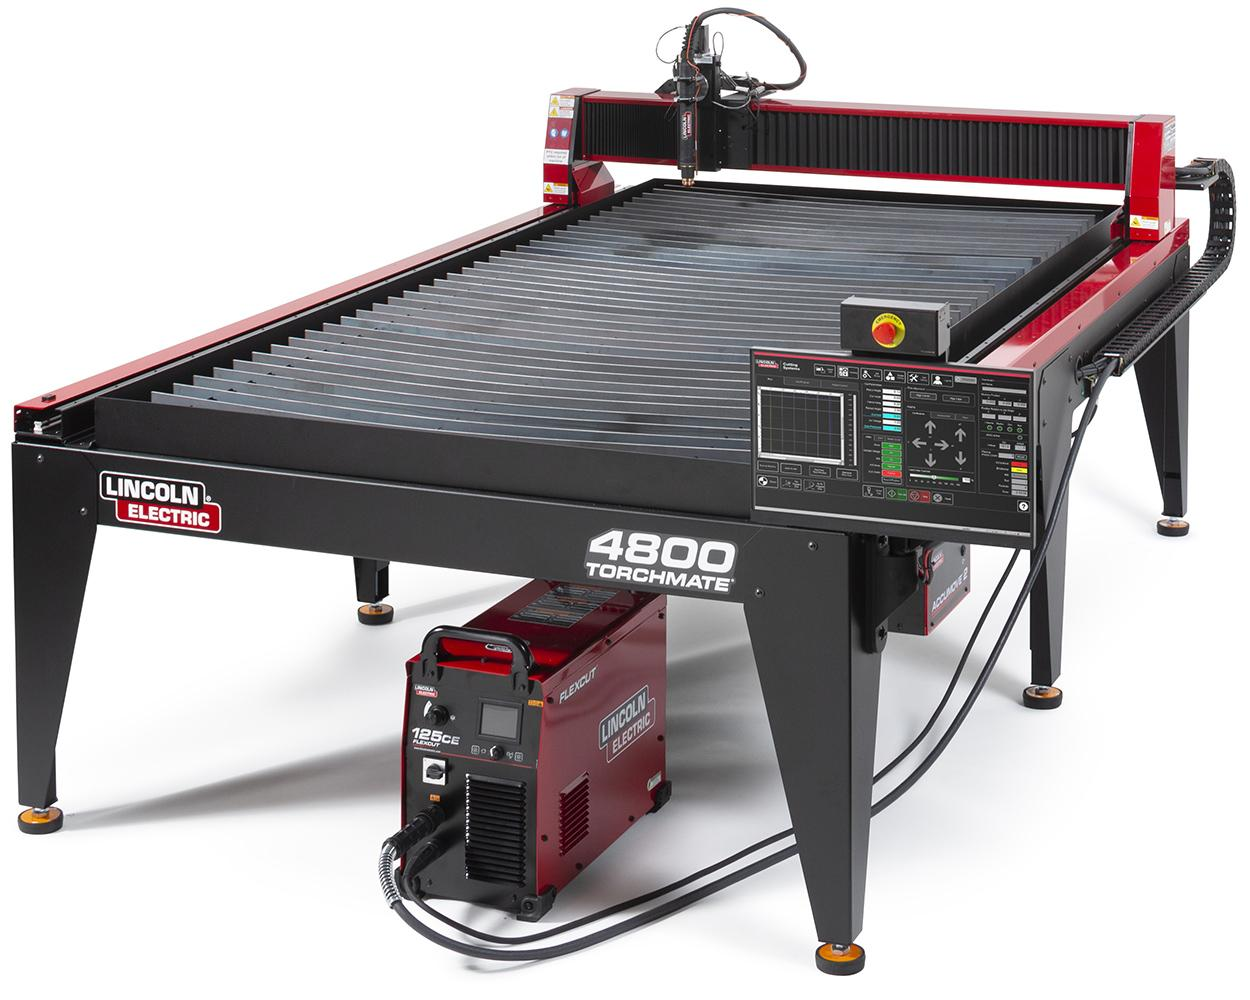 Lincoln Torchmate 4800 4ft X 8ft Cnc Plasma Cutting Table